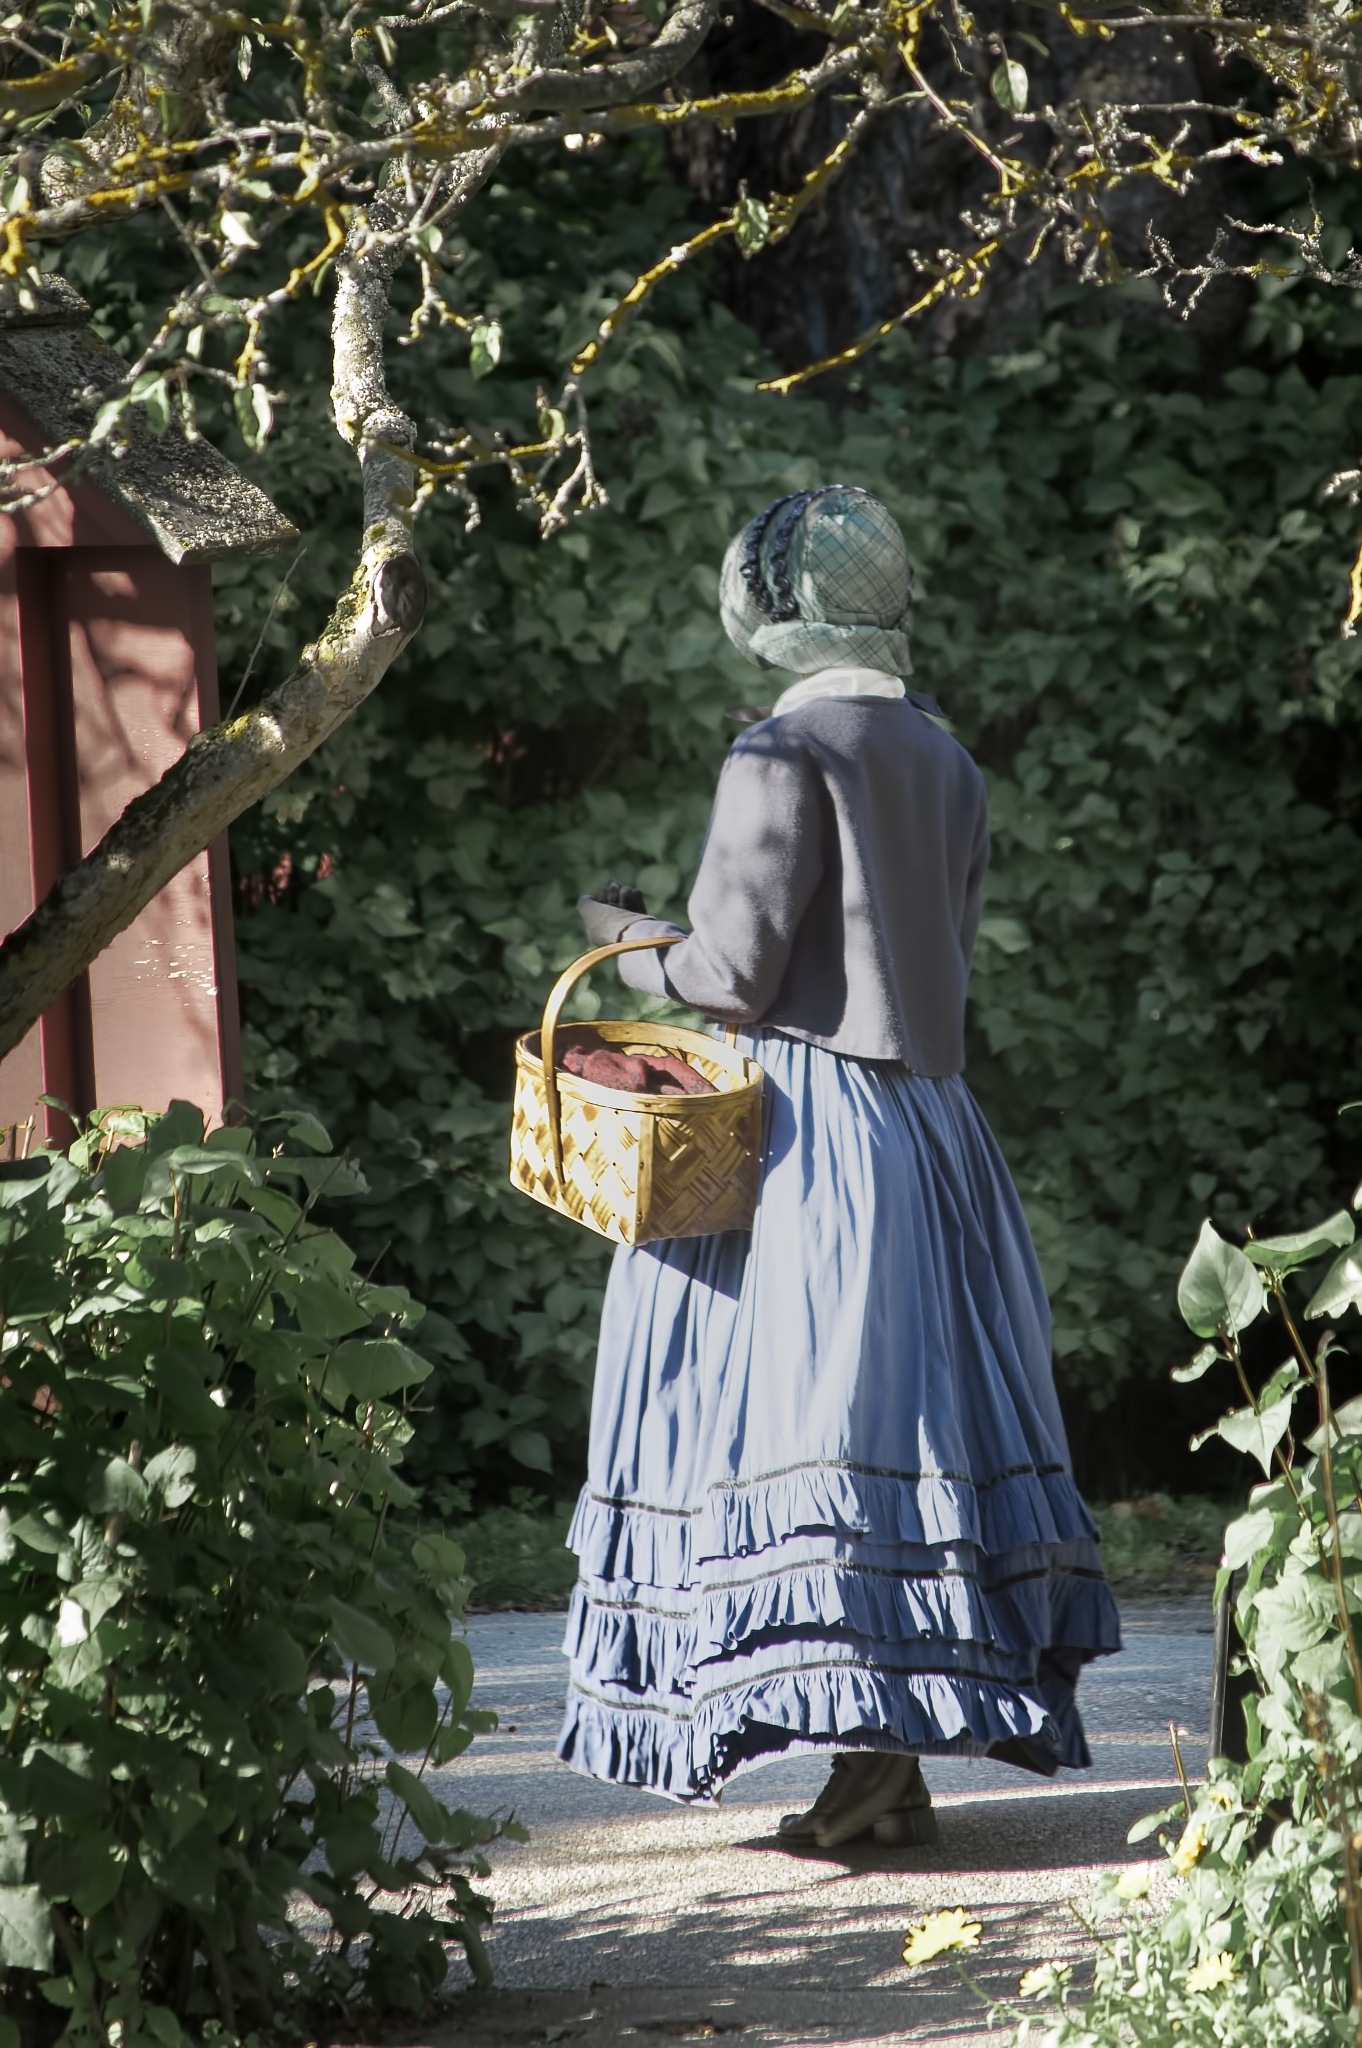 Lady with the basket by Micke Seise